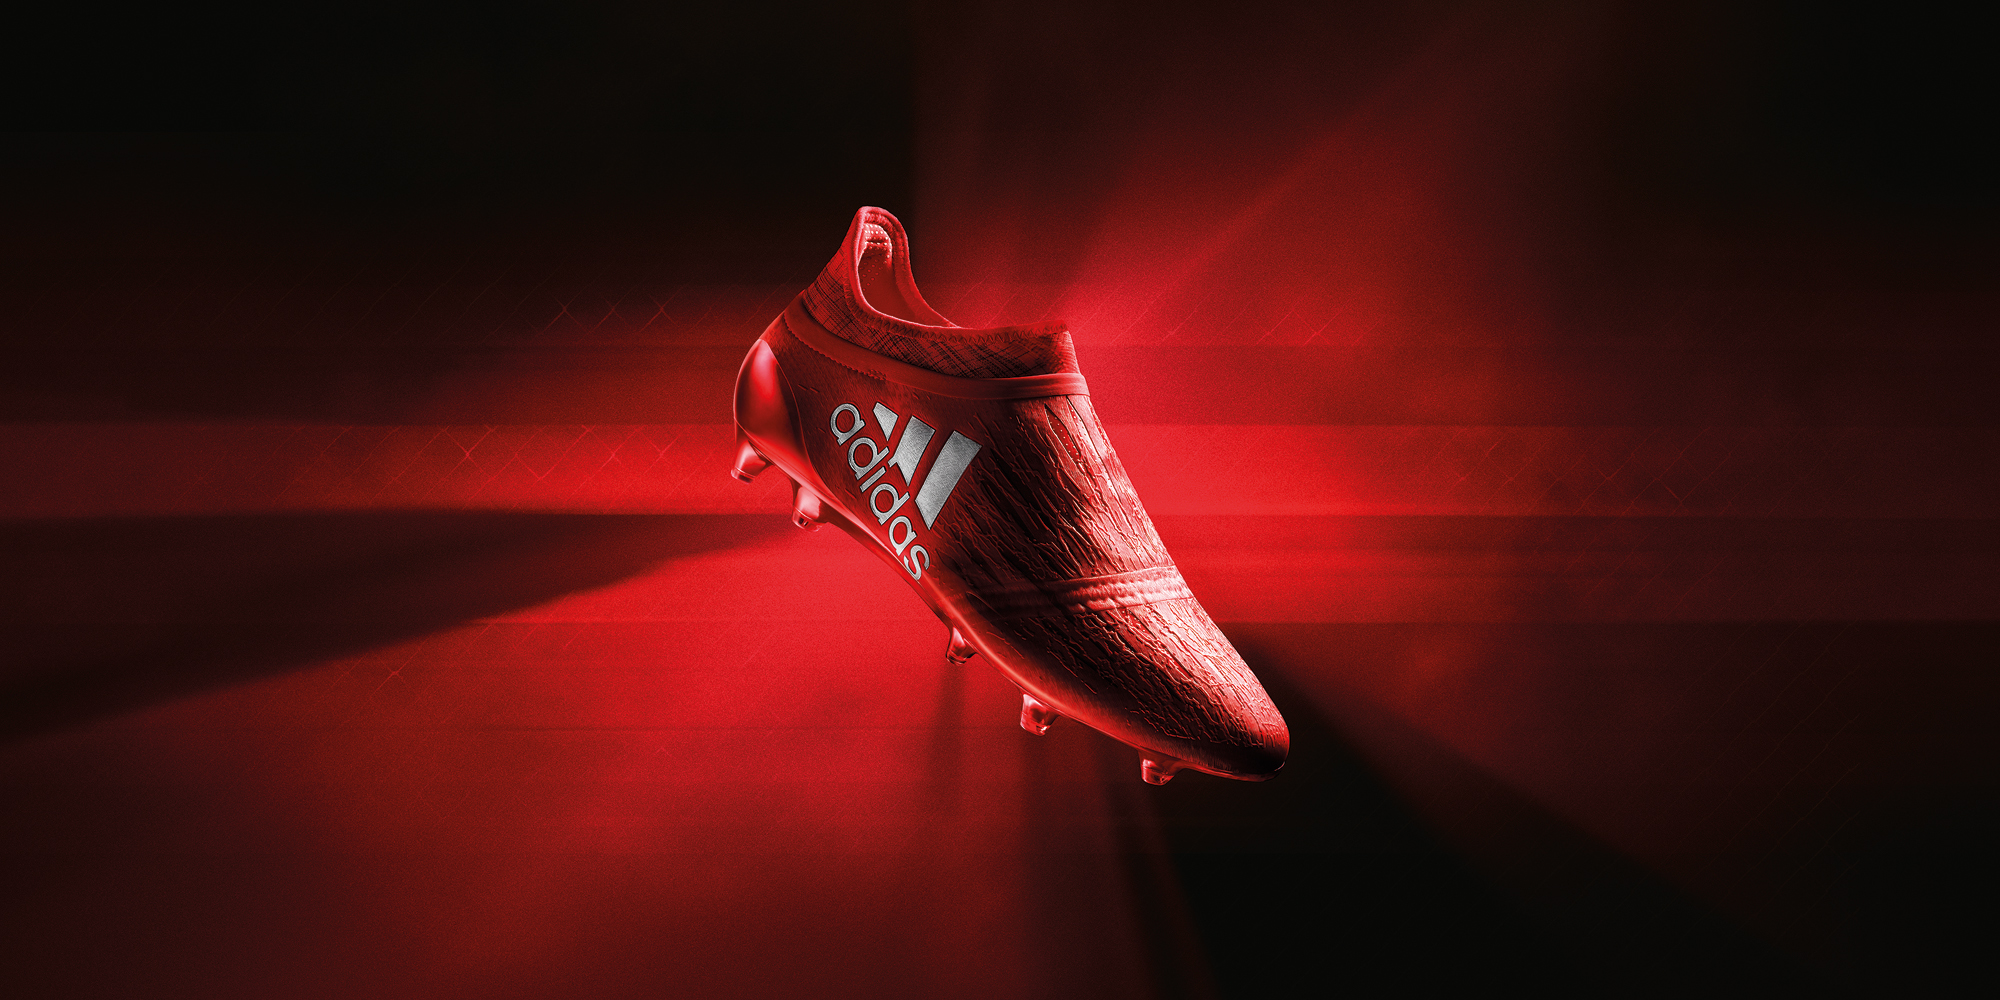 dac965df7aac Pre-Order Adidas Speed of Light Pack 16+ Pack